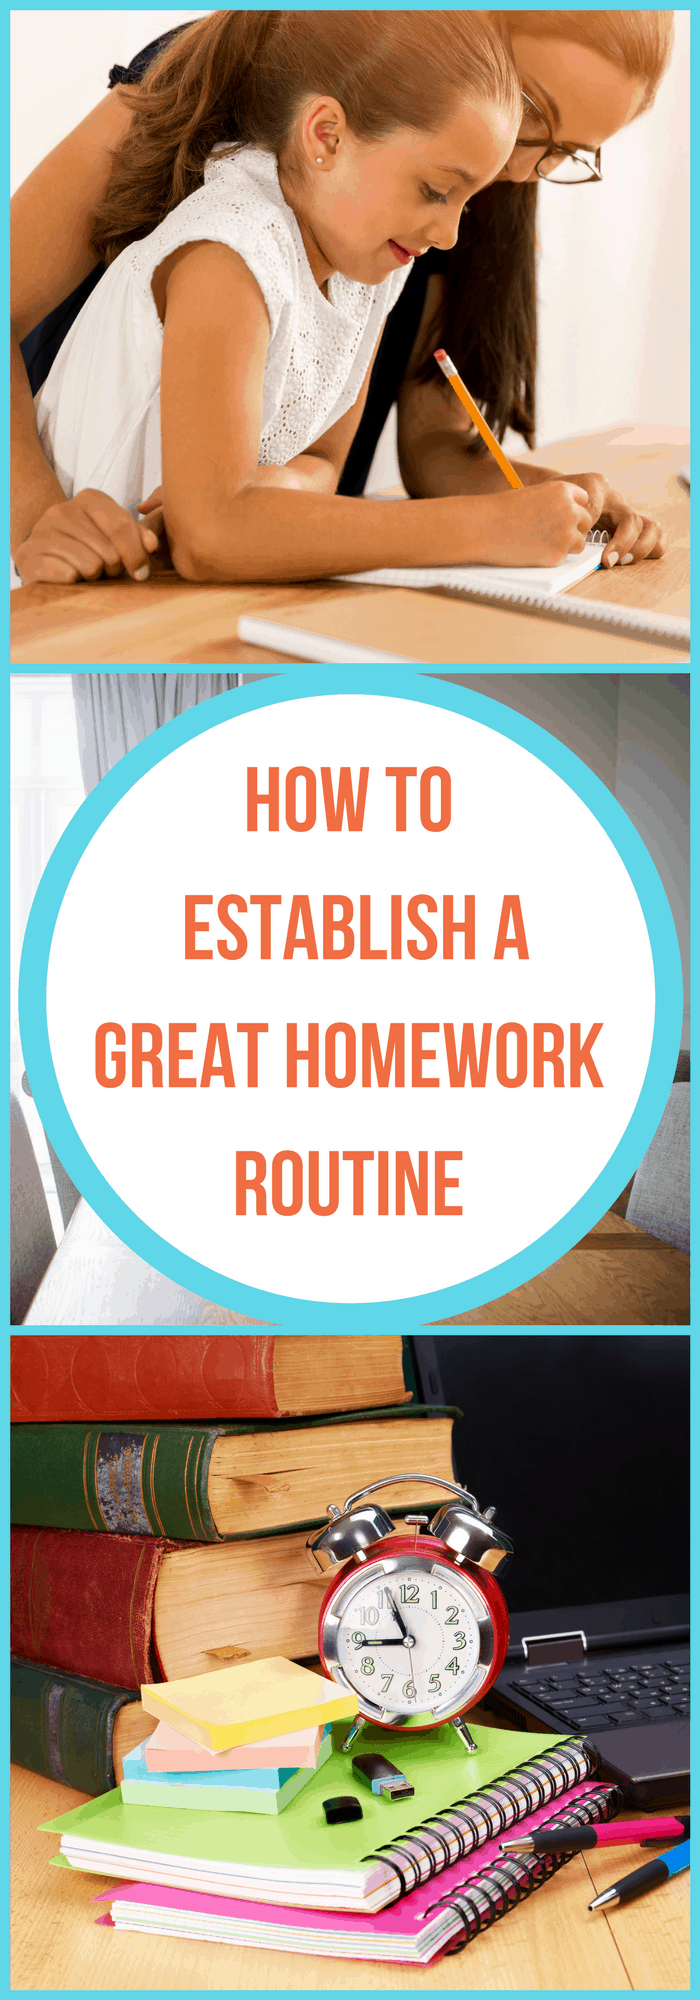 Parenting--How to Establish a Great Homework Routine--The Organized Mom